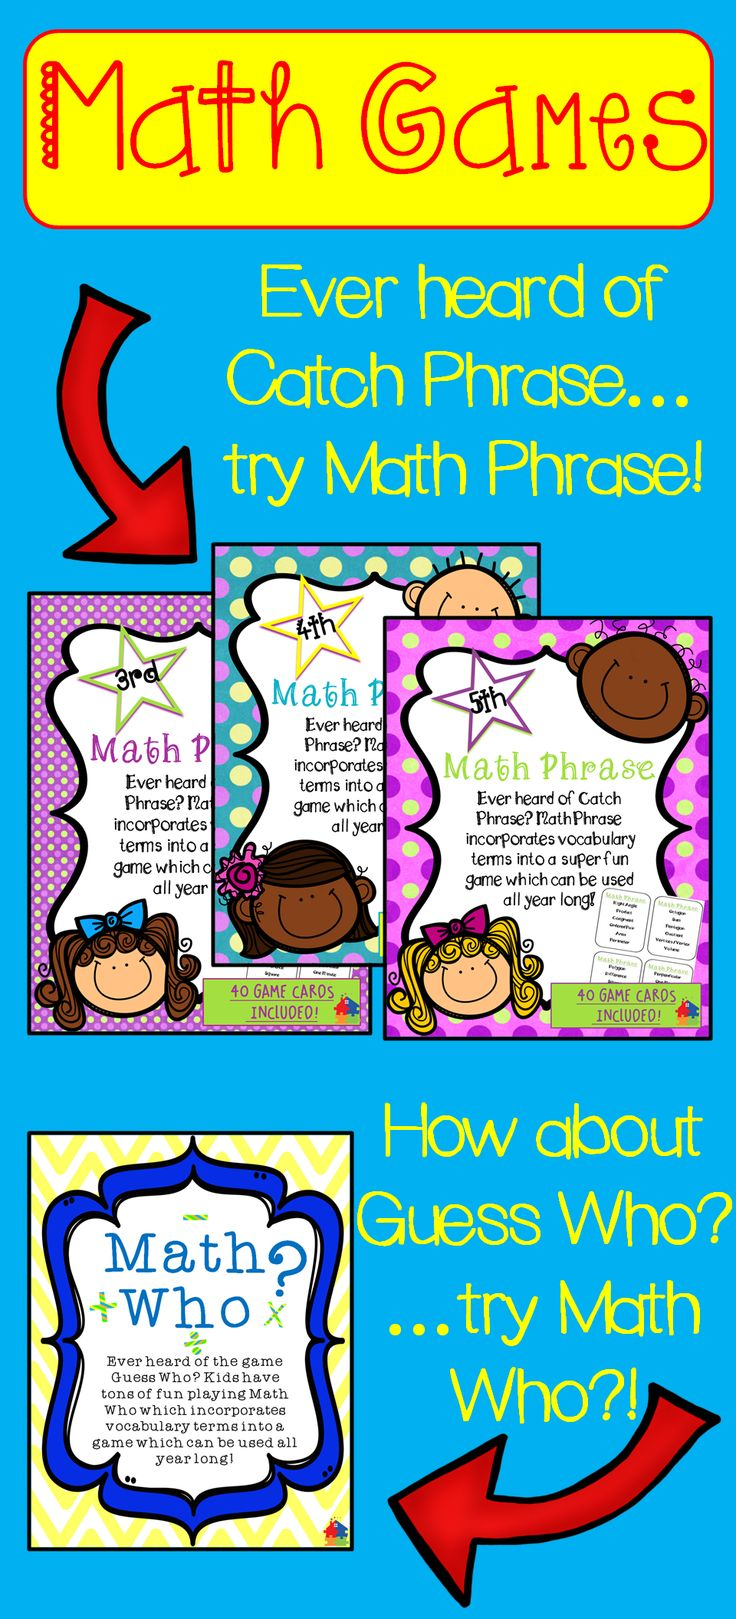 Check out these elementary math games! Ever heard of Catch Phrase and Guess Who?…